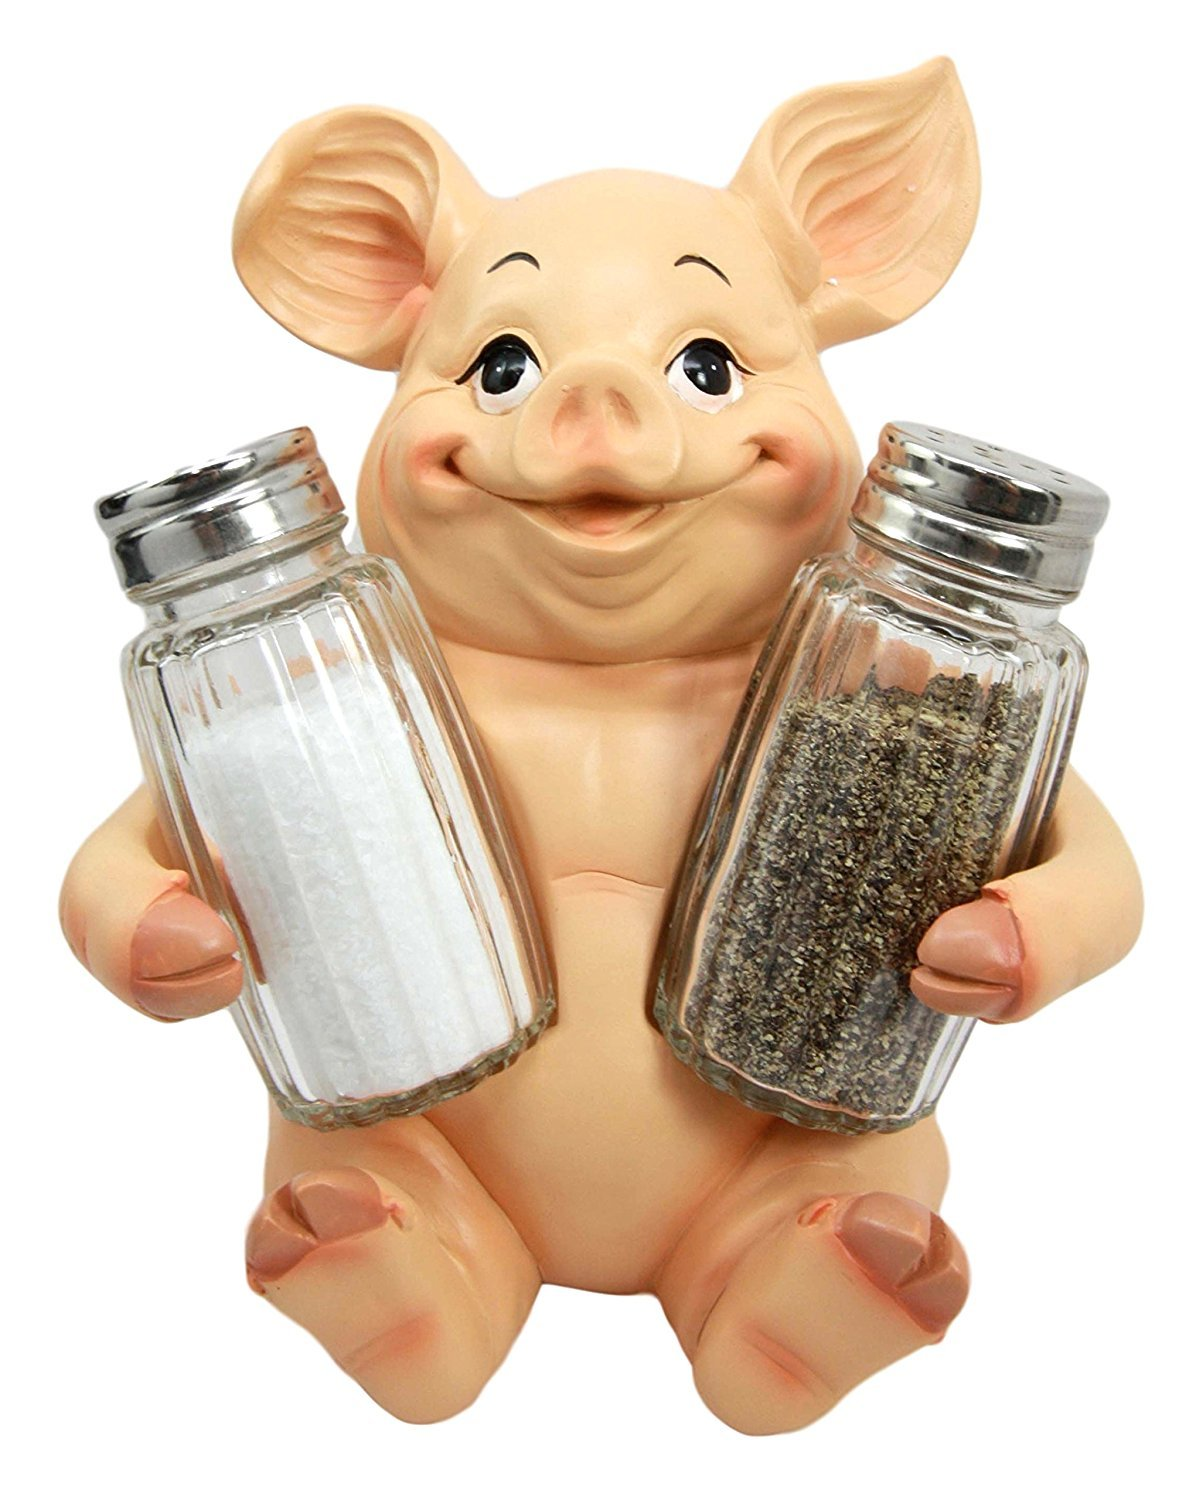 Ebros Animal Farm Cute Babe Pig Porcine Spice Statue Salt And Pepper Shakers Holder Pig Figurine Kitchen Decor Centerpiece Farmers Animal Lovers by Ebros Gift